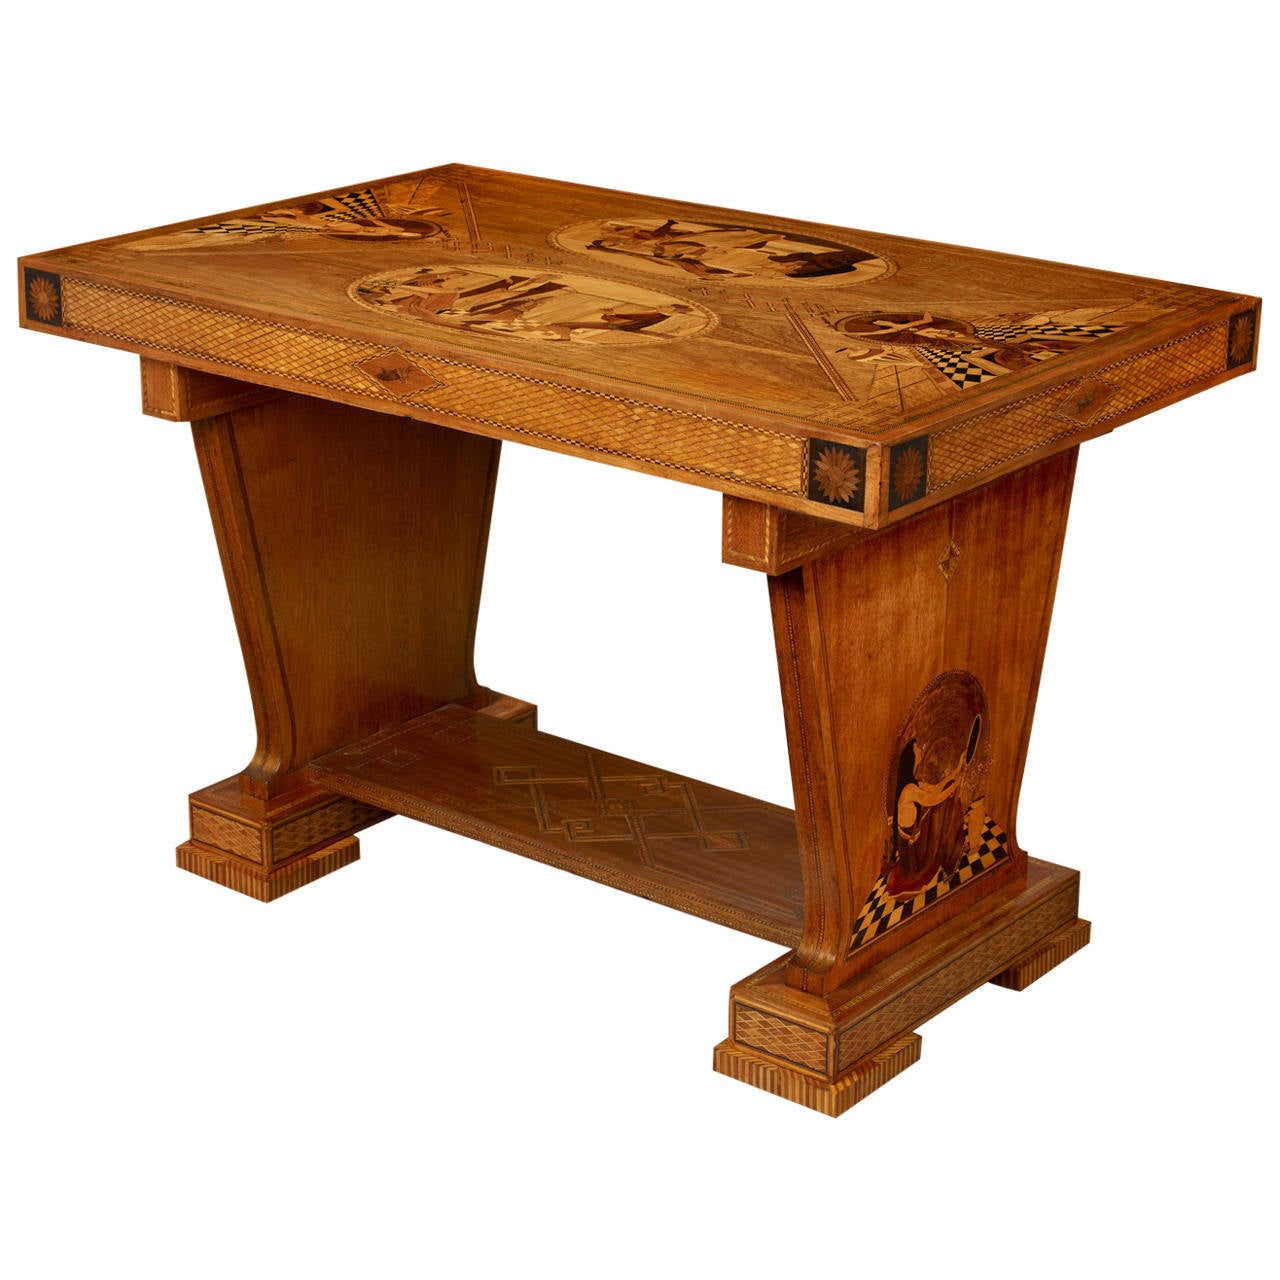 Art deco marquetry center table for sale at 1stdibs for Table de nuit art deco